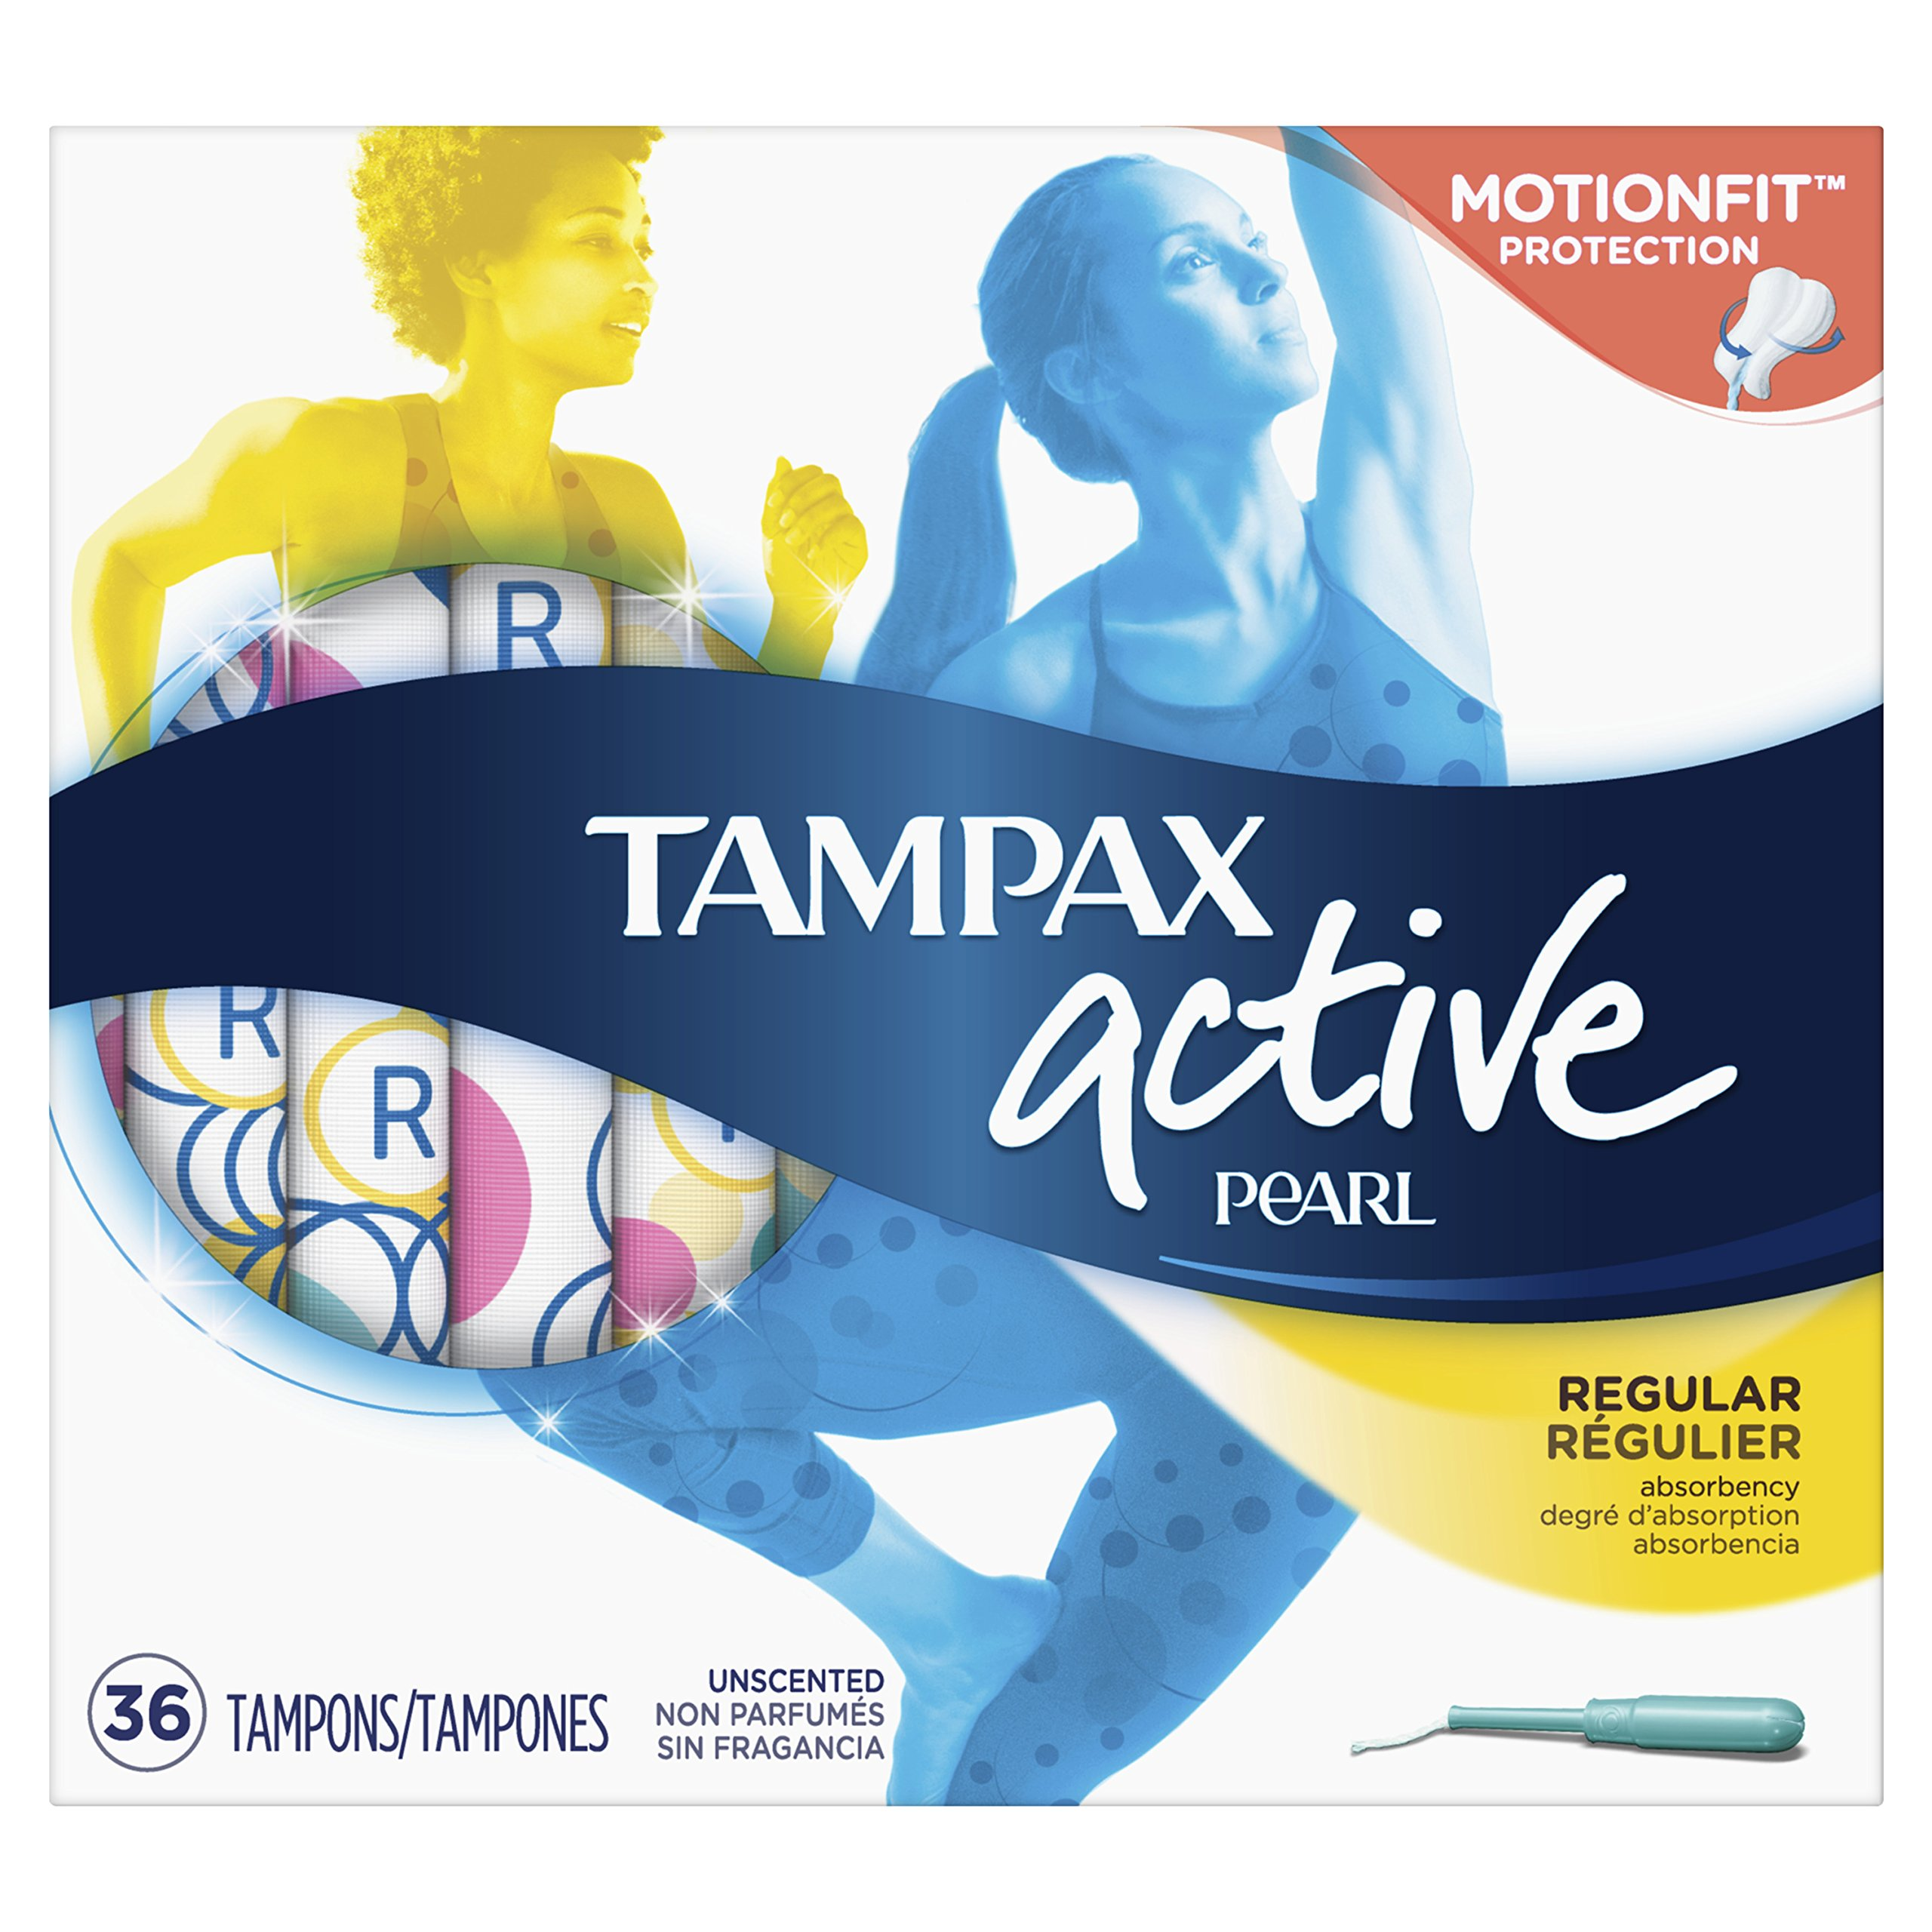 Tampax Pearl Active Tampons with Plastic Applicator, Regular Absorbency, Unscented, 36 Count - Pack of 6 (216 Count Total) (Packaging May Vary) by Tampax